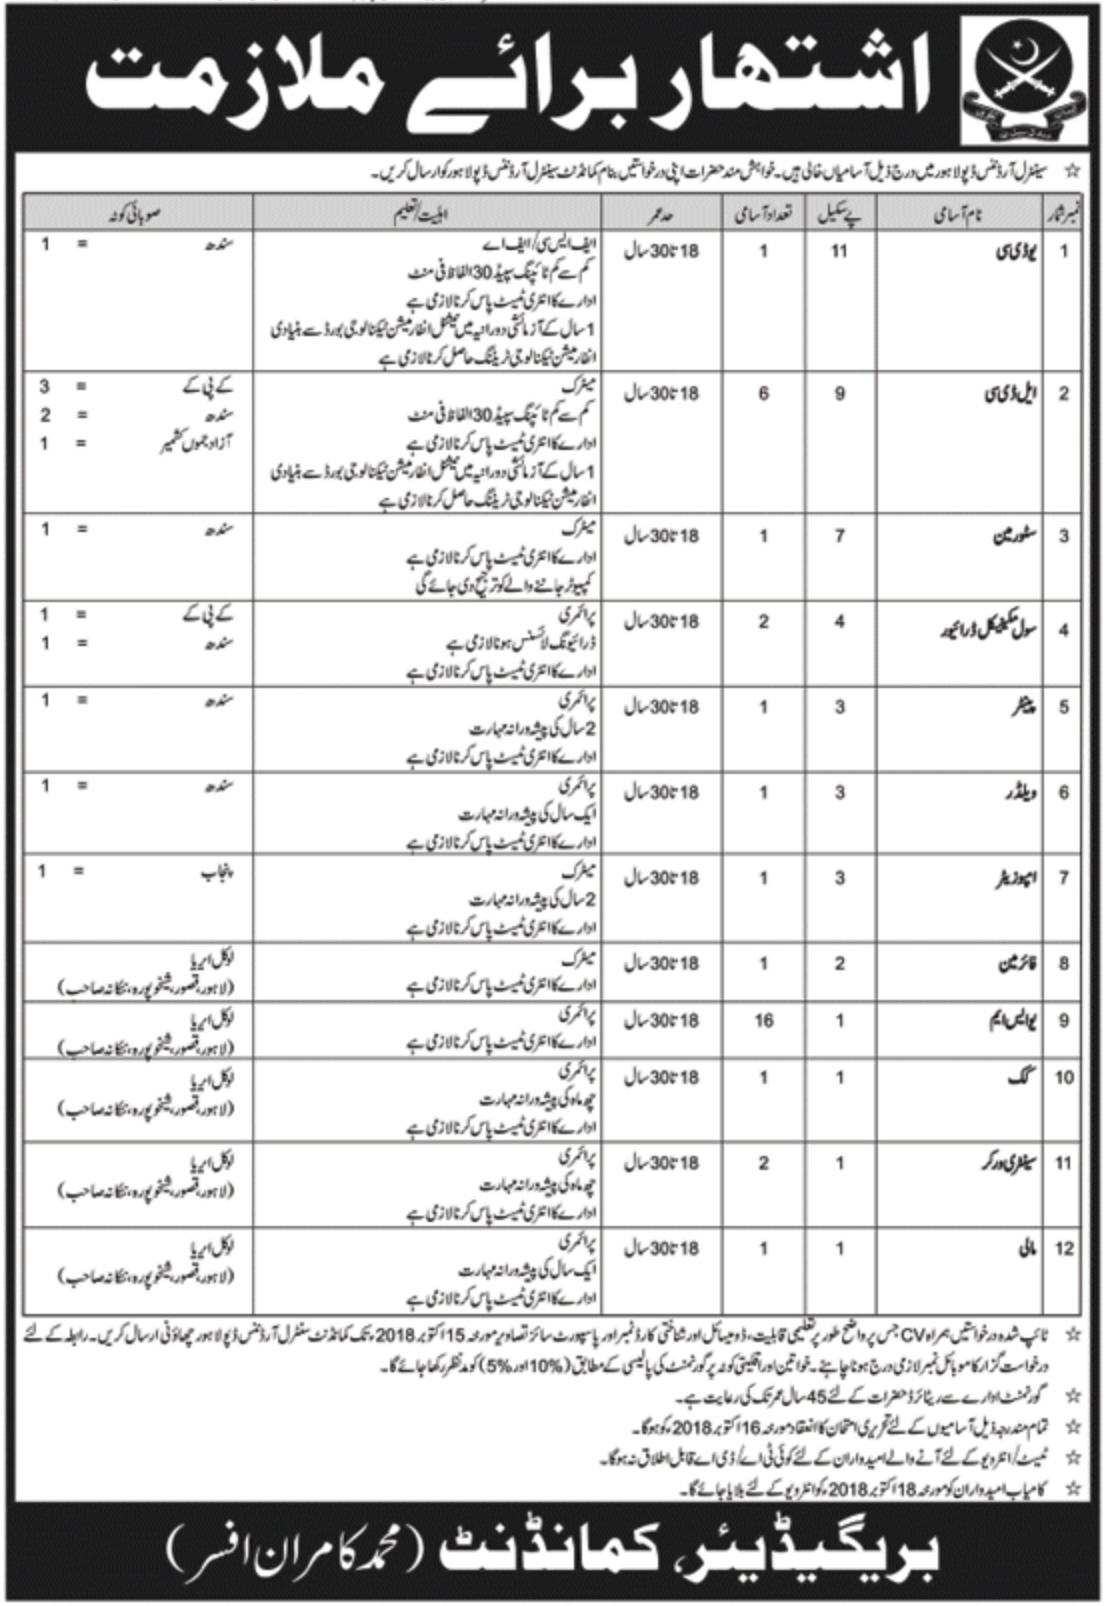 Central Ordnance Depot COD Lahore Pak Army Jobs 2018